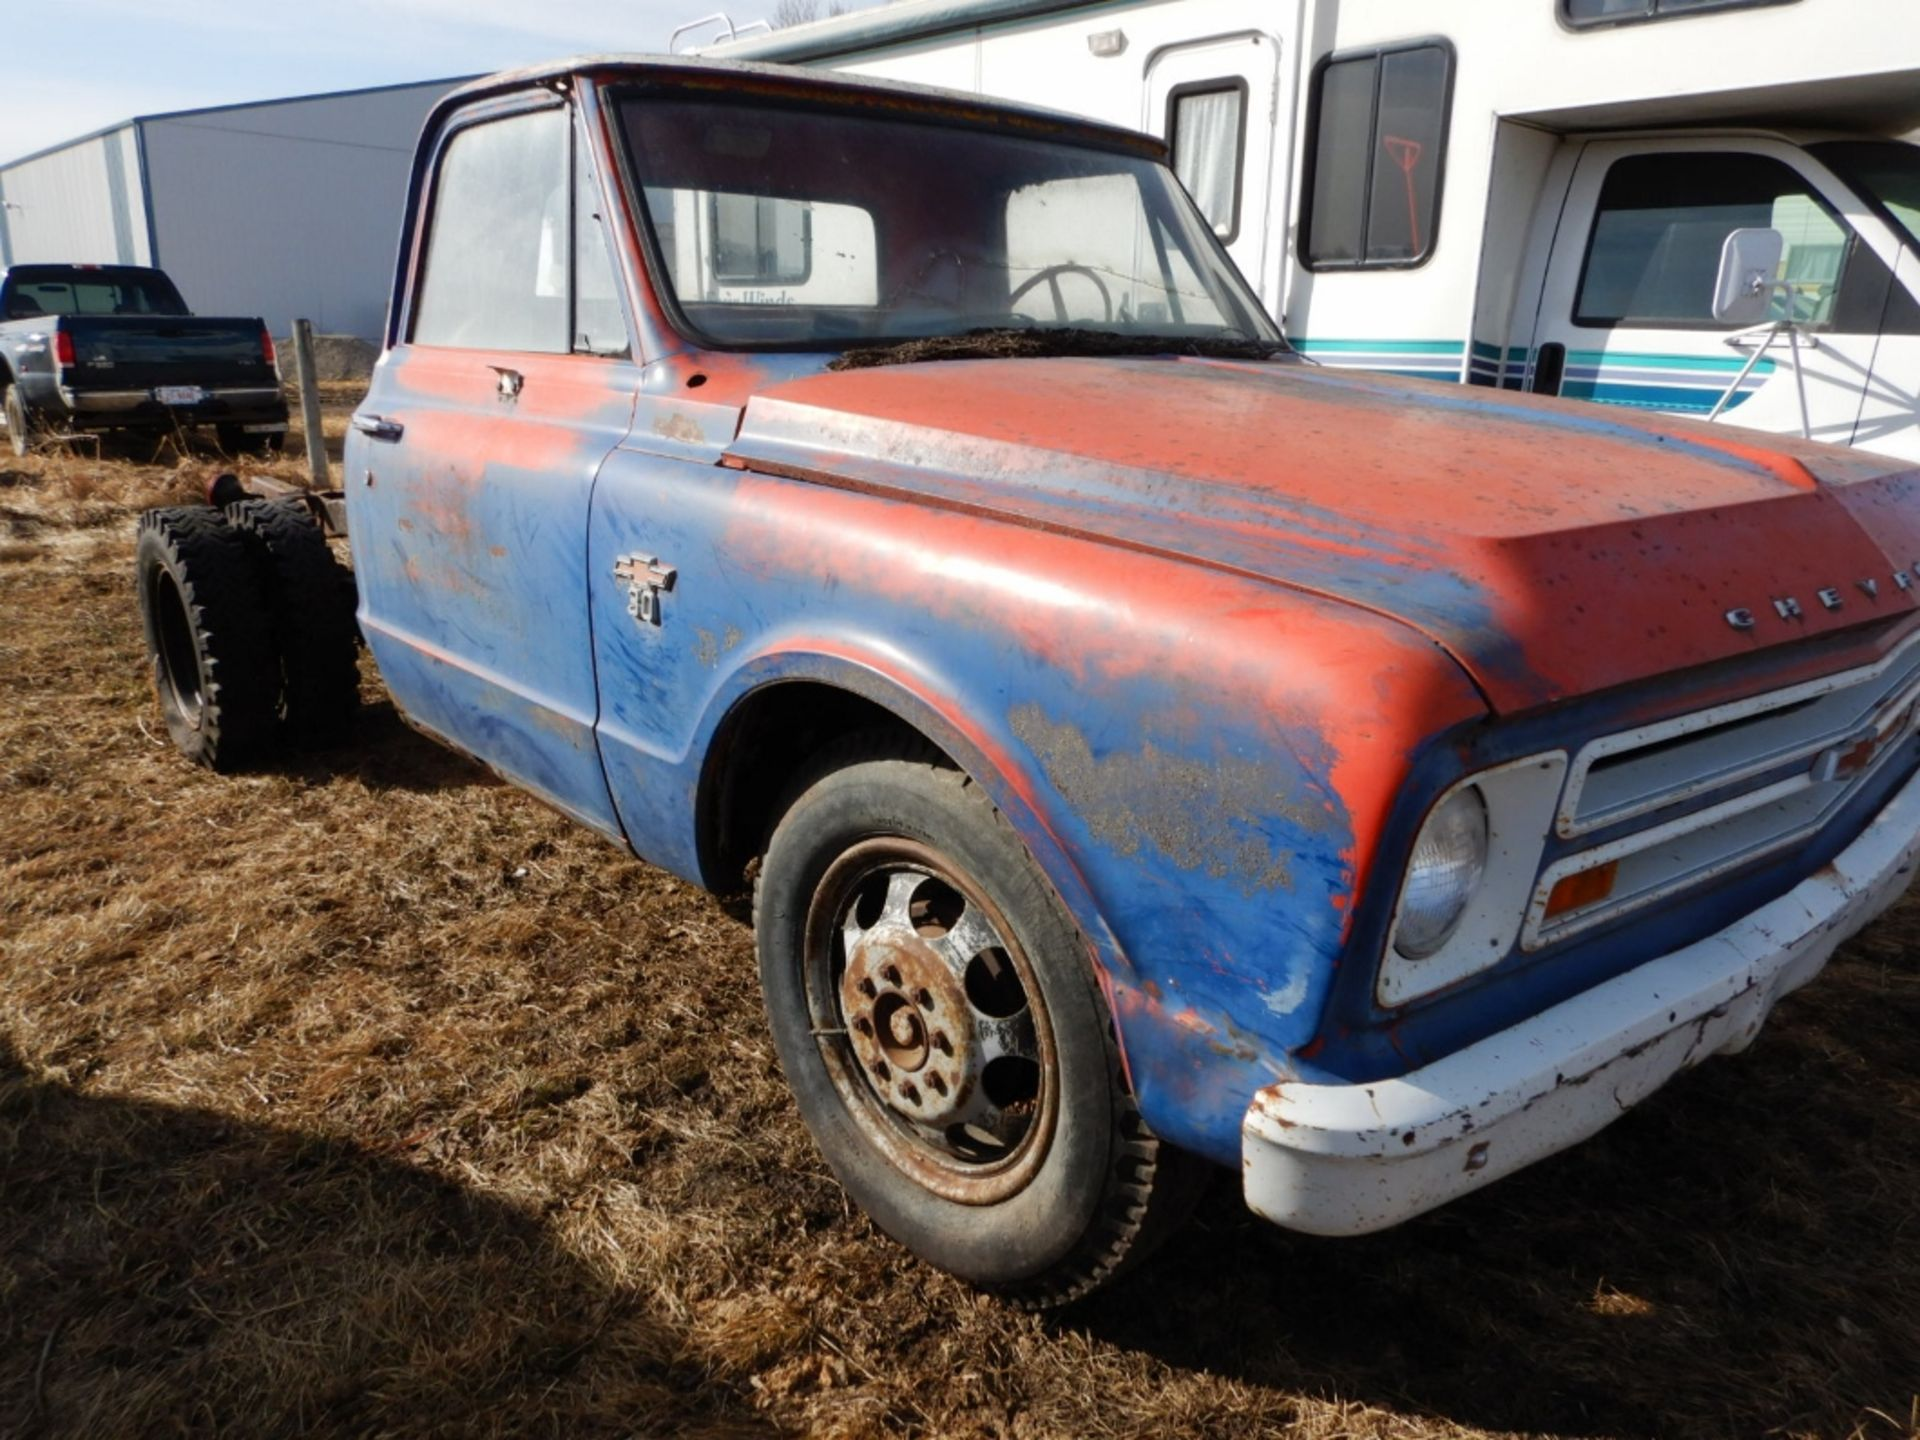 1970'S CHEV 30 CAB & CHASSIS - REG CAB, DUALS, NO ENGINE OR TRANSMISSION S/N CE3371125498 - Image 3 of 9